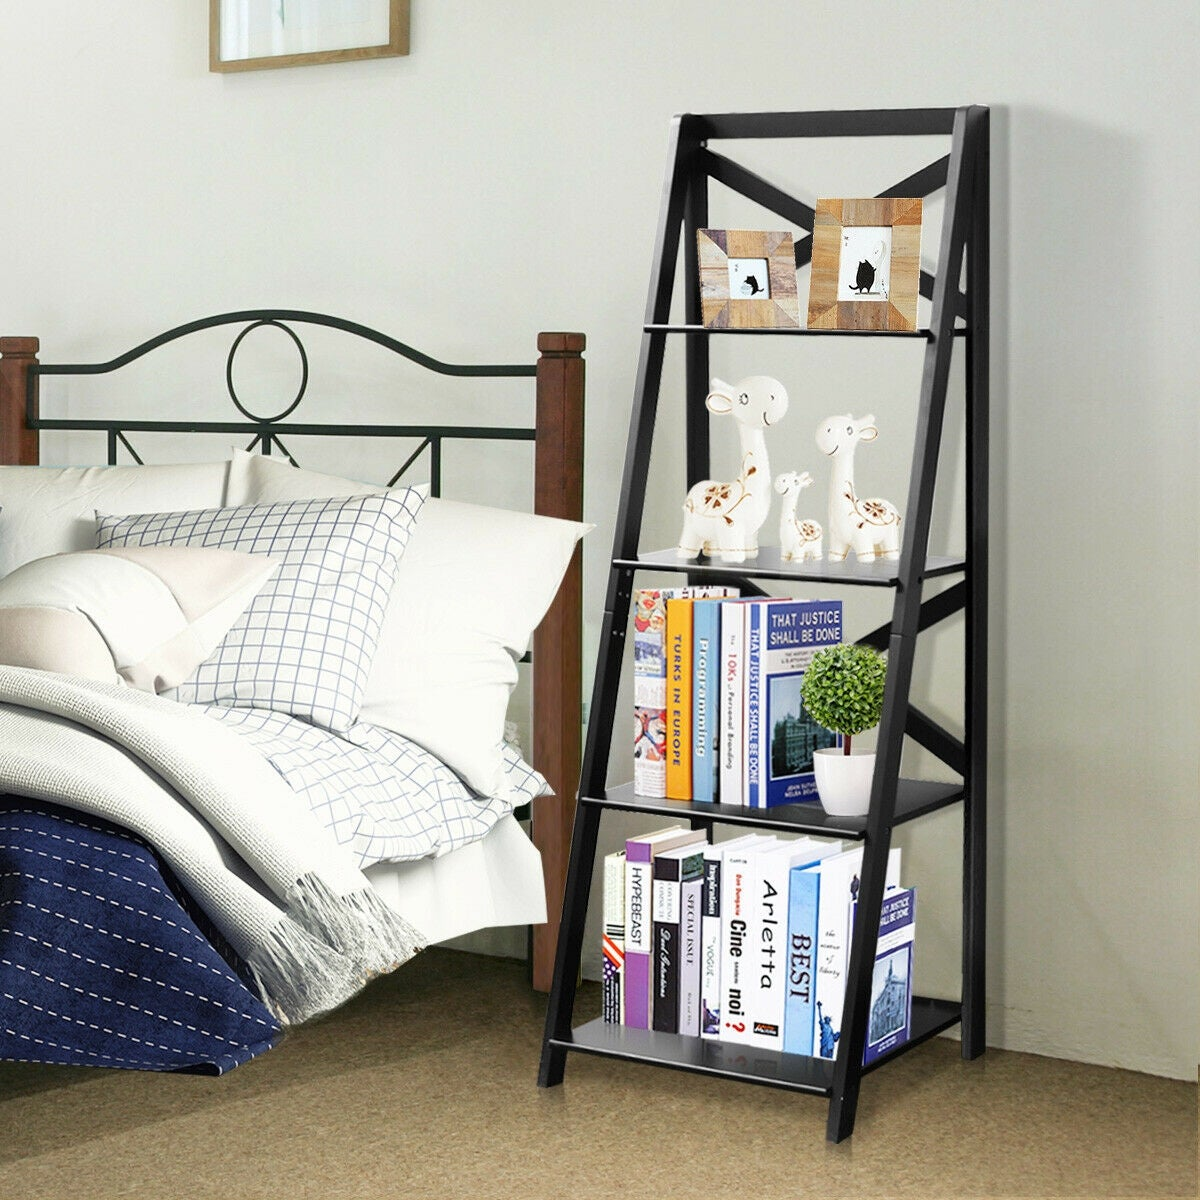 Costway 4 Tier Ladder Shelf Bookshelf Bookcase Storage Display Leaning Home Office Decor